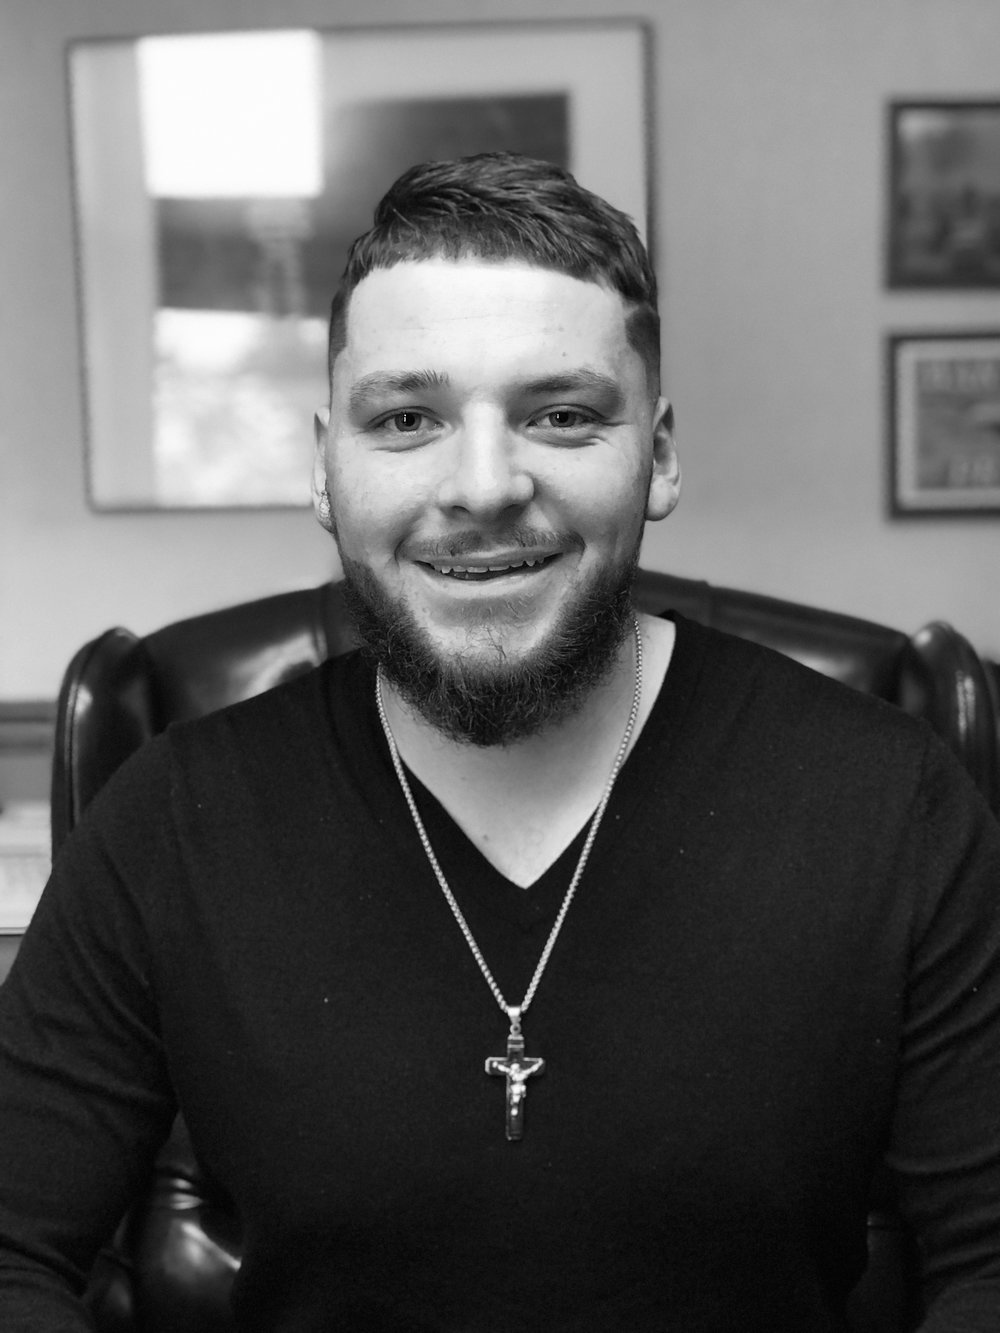 Robert has been with the Southwest Council, Inc. since January of 2018 and serves as an Alcohol, Tobacco, and Other Drug Prevention Specialist. Robert provides evidence-based school and community wide-programs in Cumberland, Gloucester, and Salem County. He also assists in facilitating Camp YEY.  When Robert isn't hard at work he enjoys coaching his youth and high school baseball teams, as well as spending time creating memories with his friends and family.  Rowan University - BA Communication Studies & Journalism